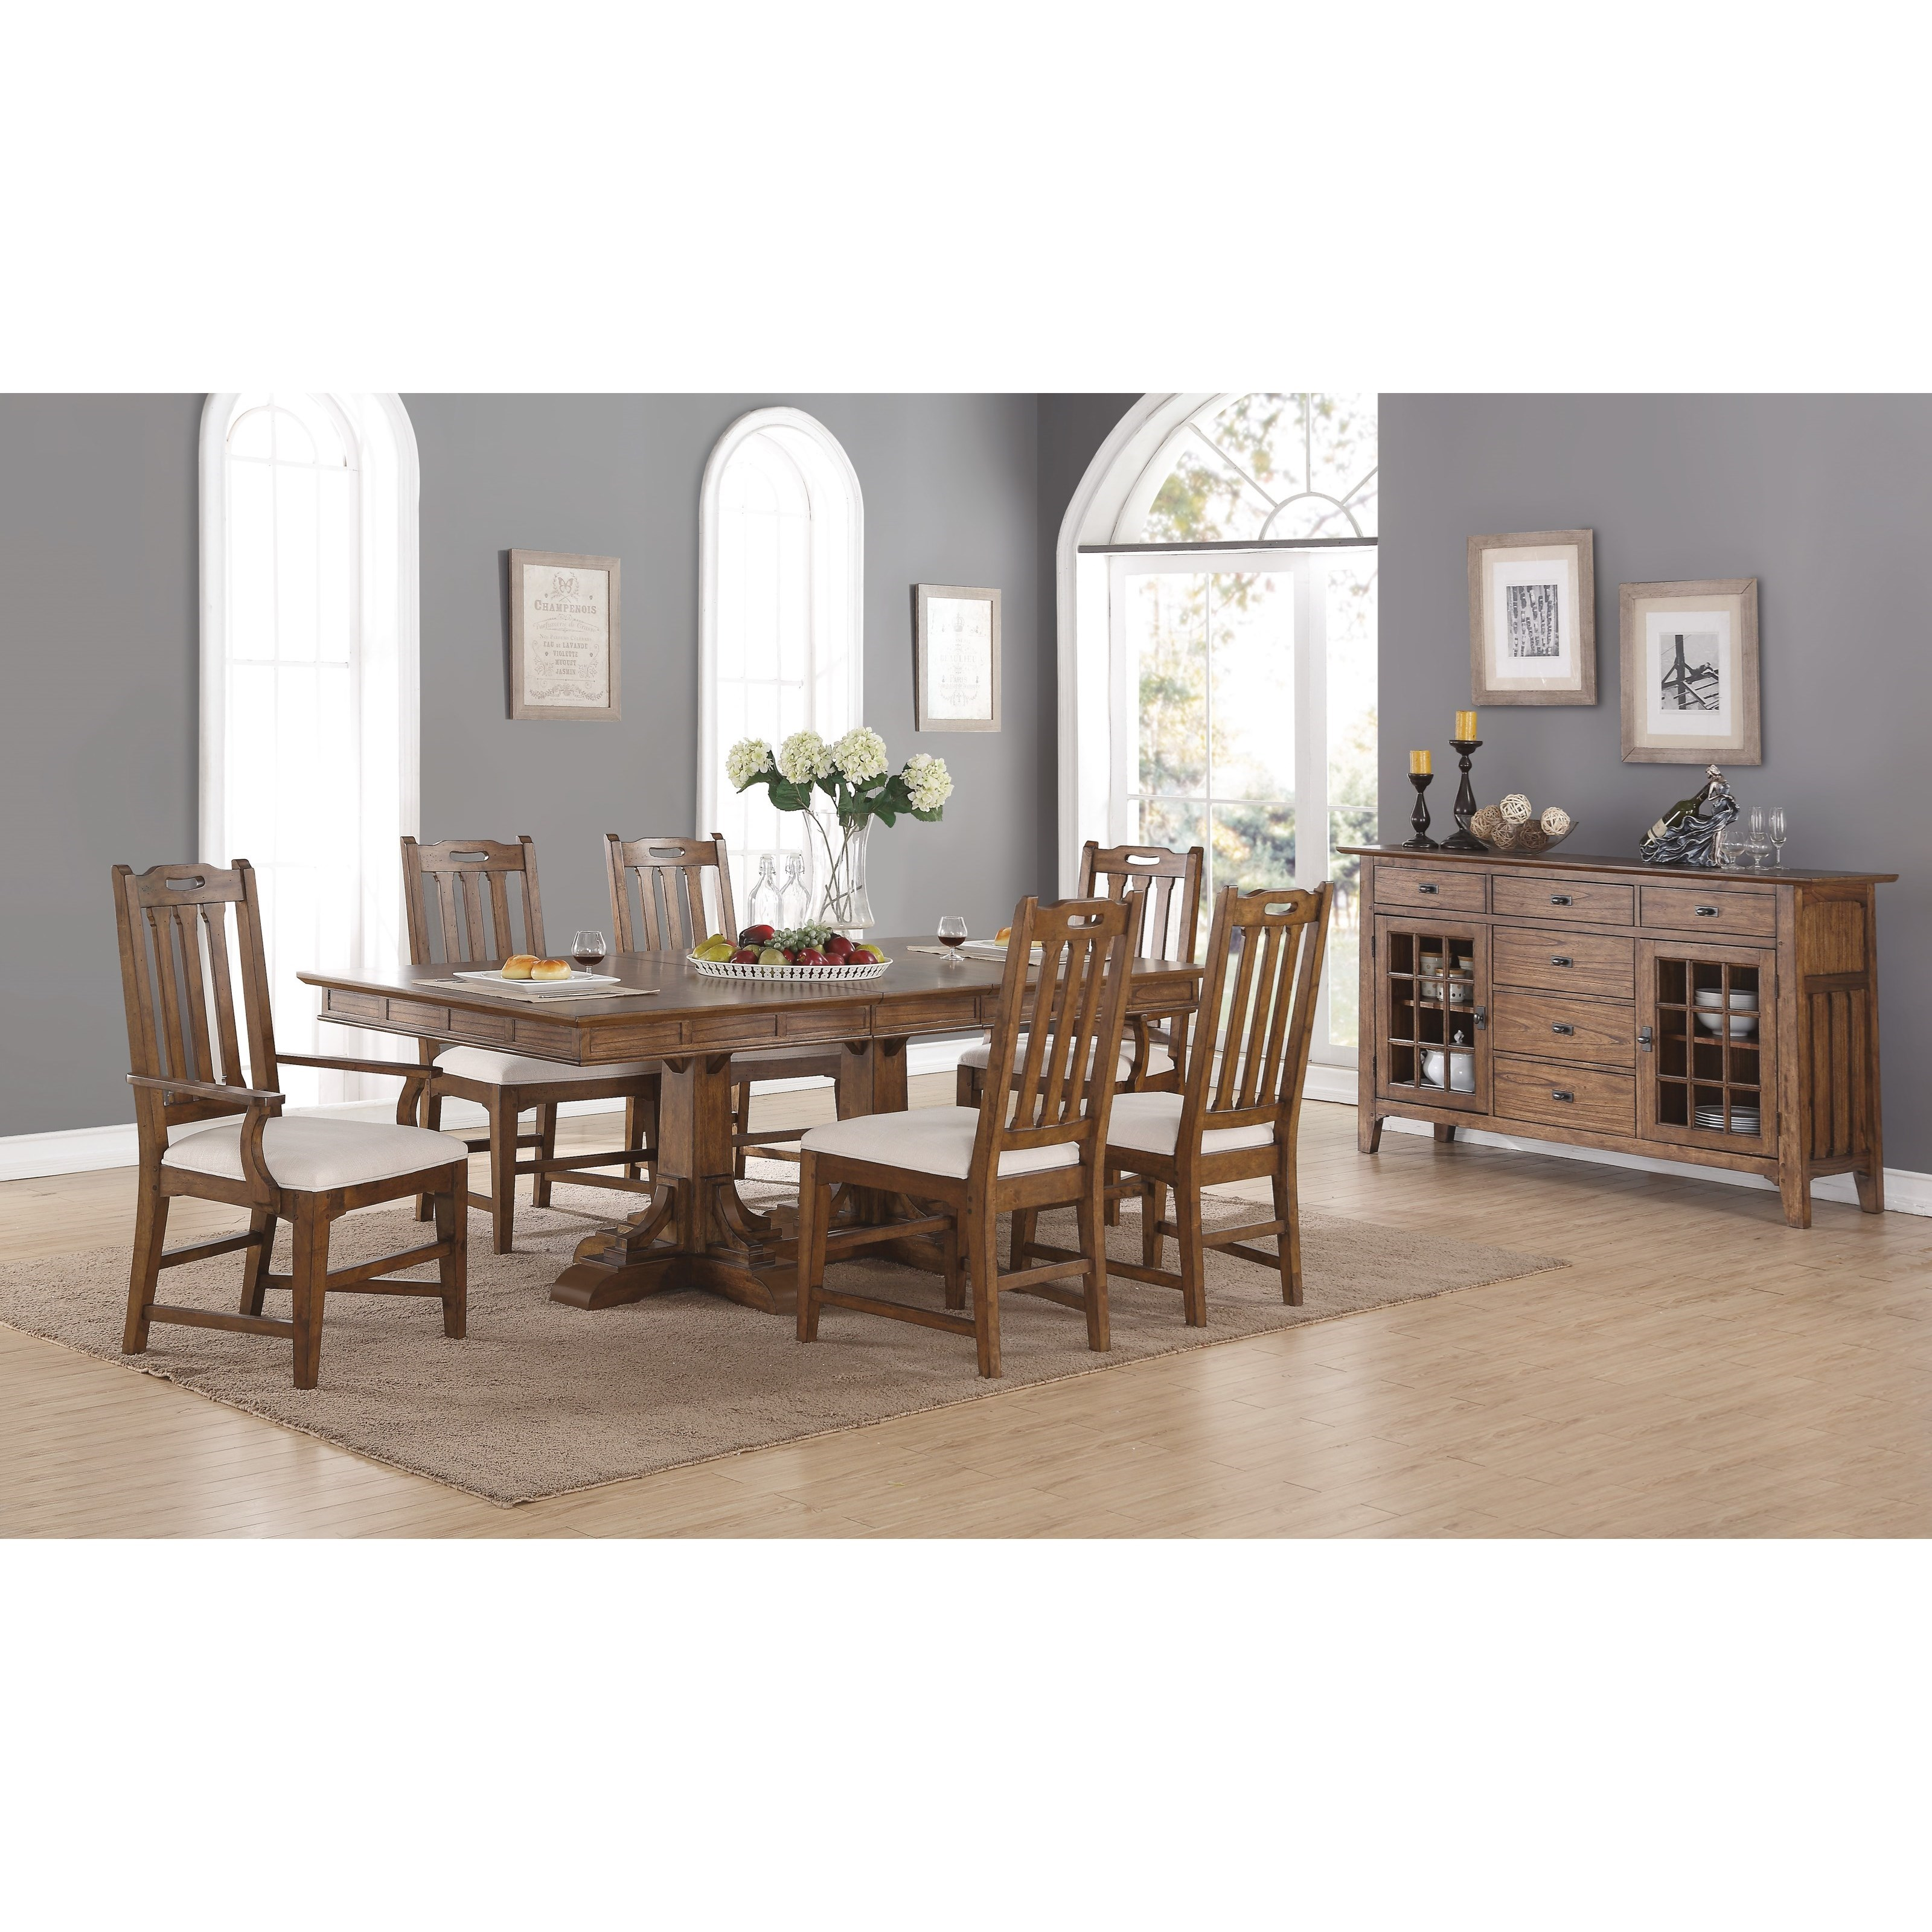 Formal Dining Room Furniture Manufacturers: Flexsteel Wynwood Collection Sonora Formal Dining Room